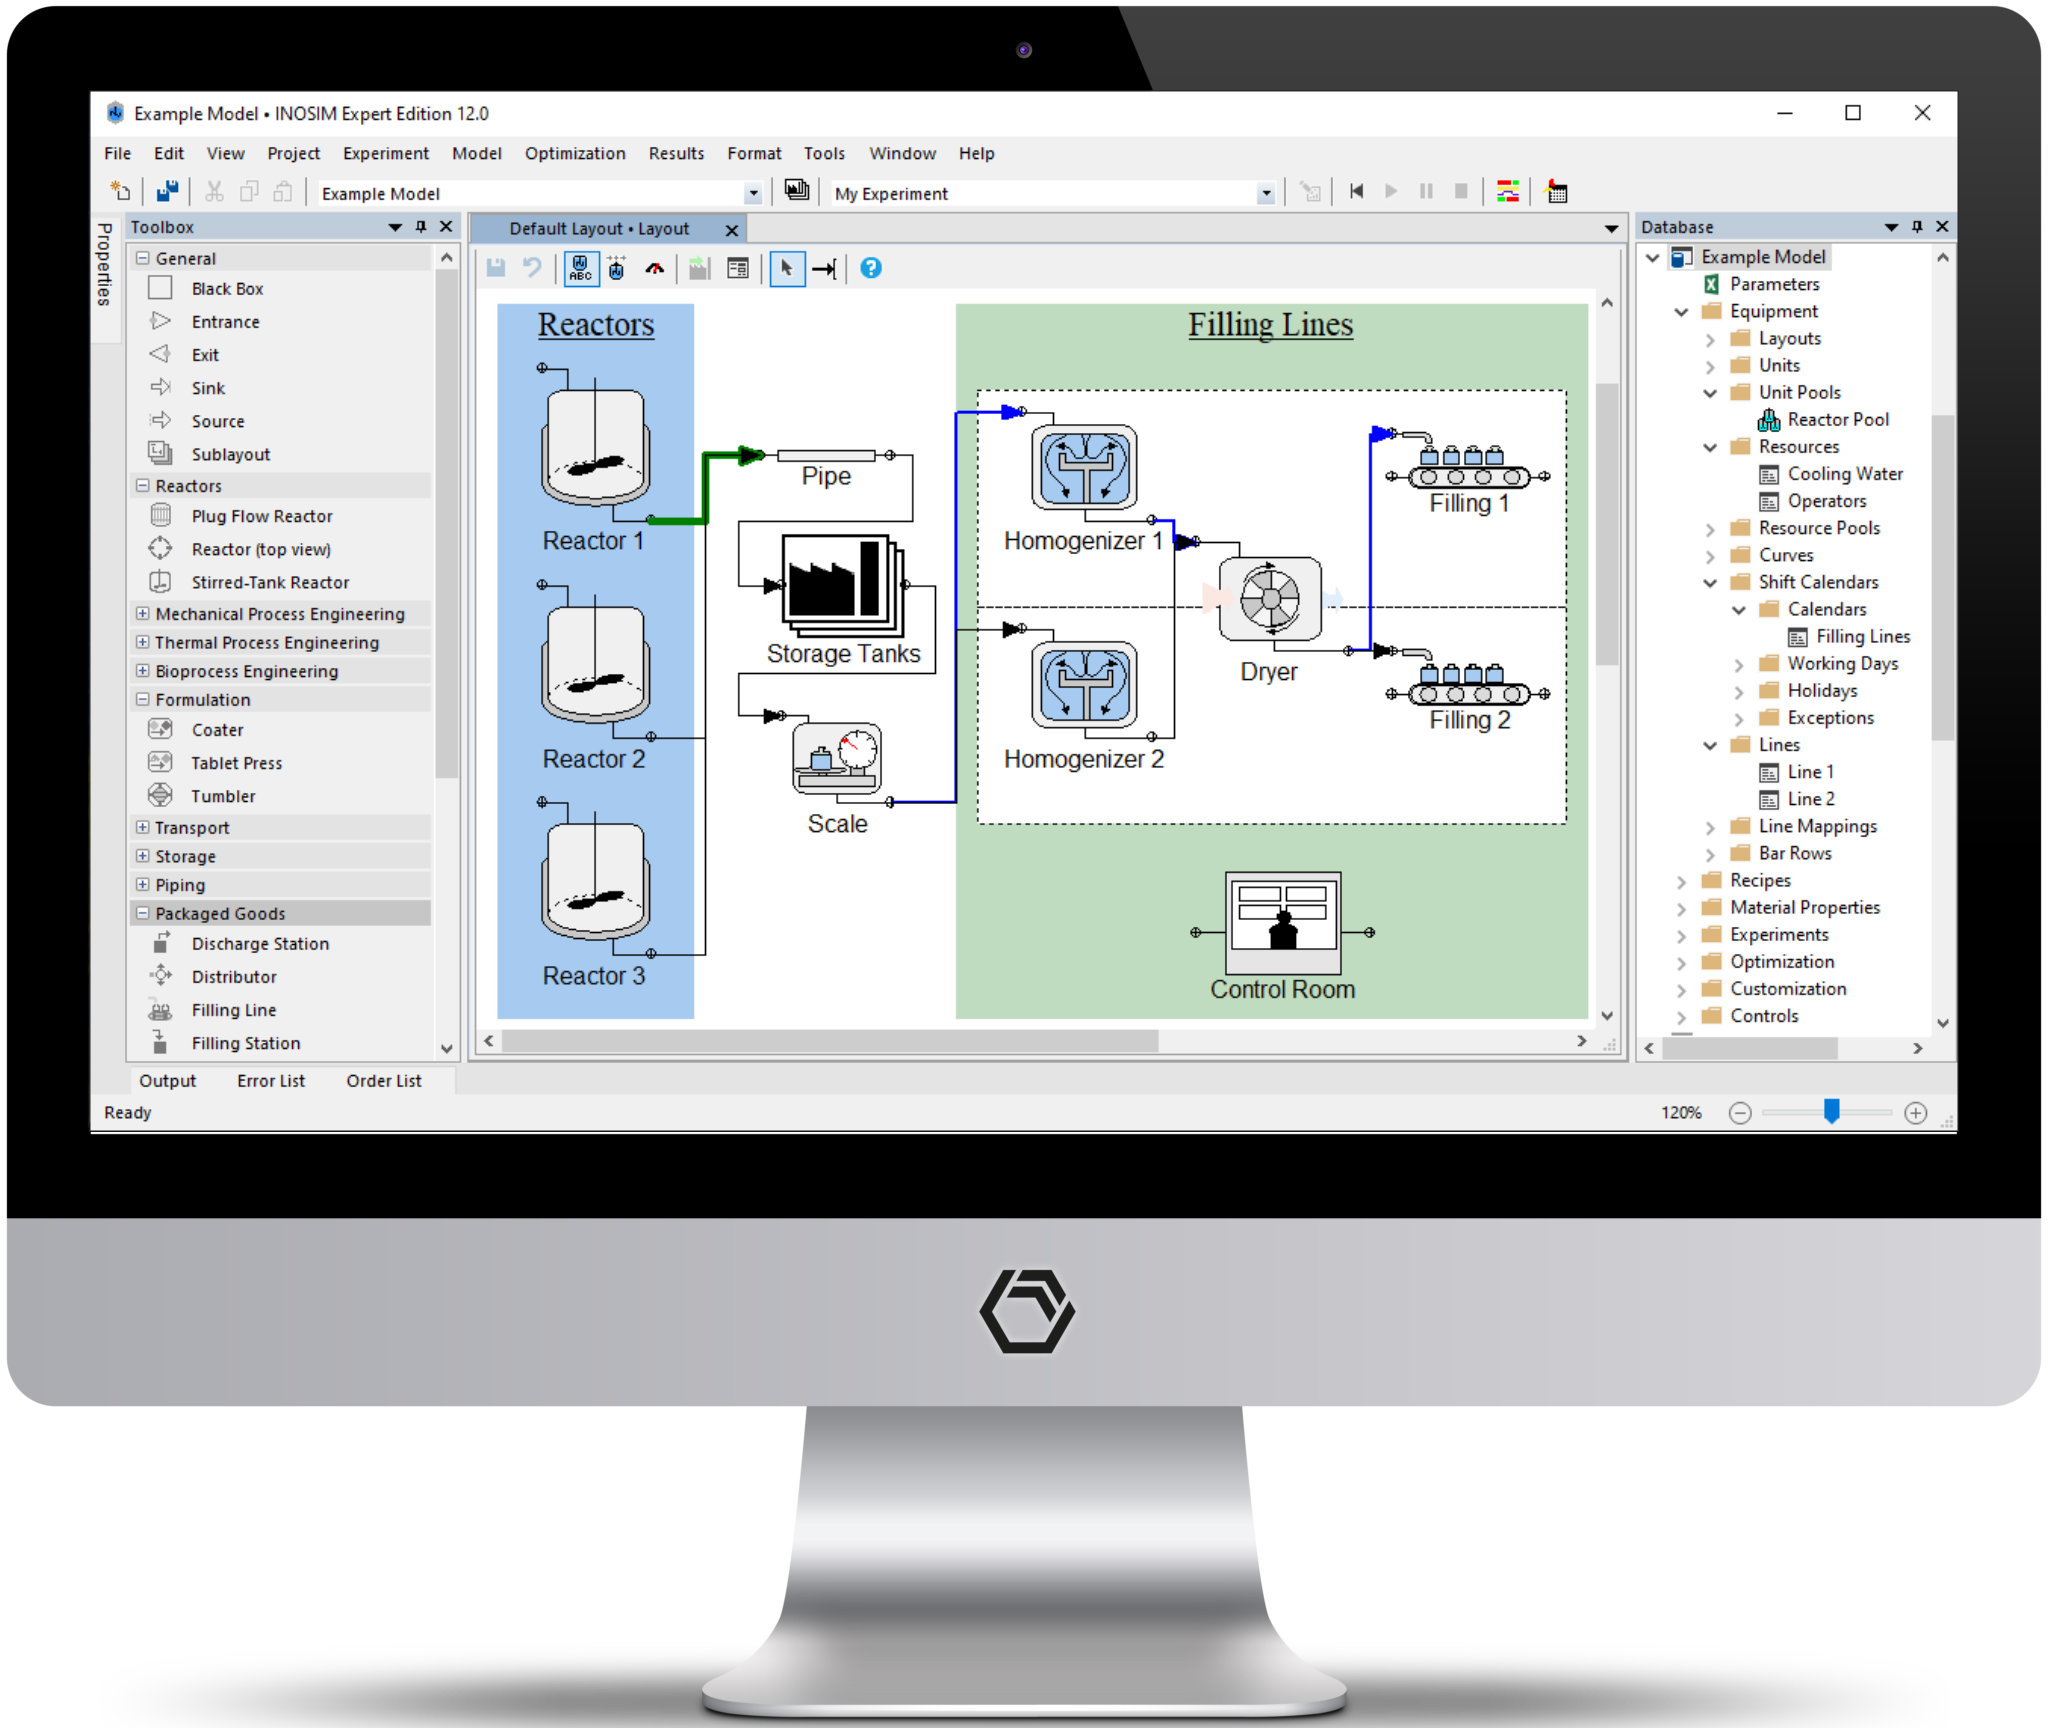 INOSIM offers a variaty of modelling elements to build a true digital twin of your process